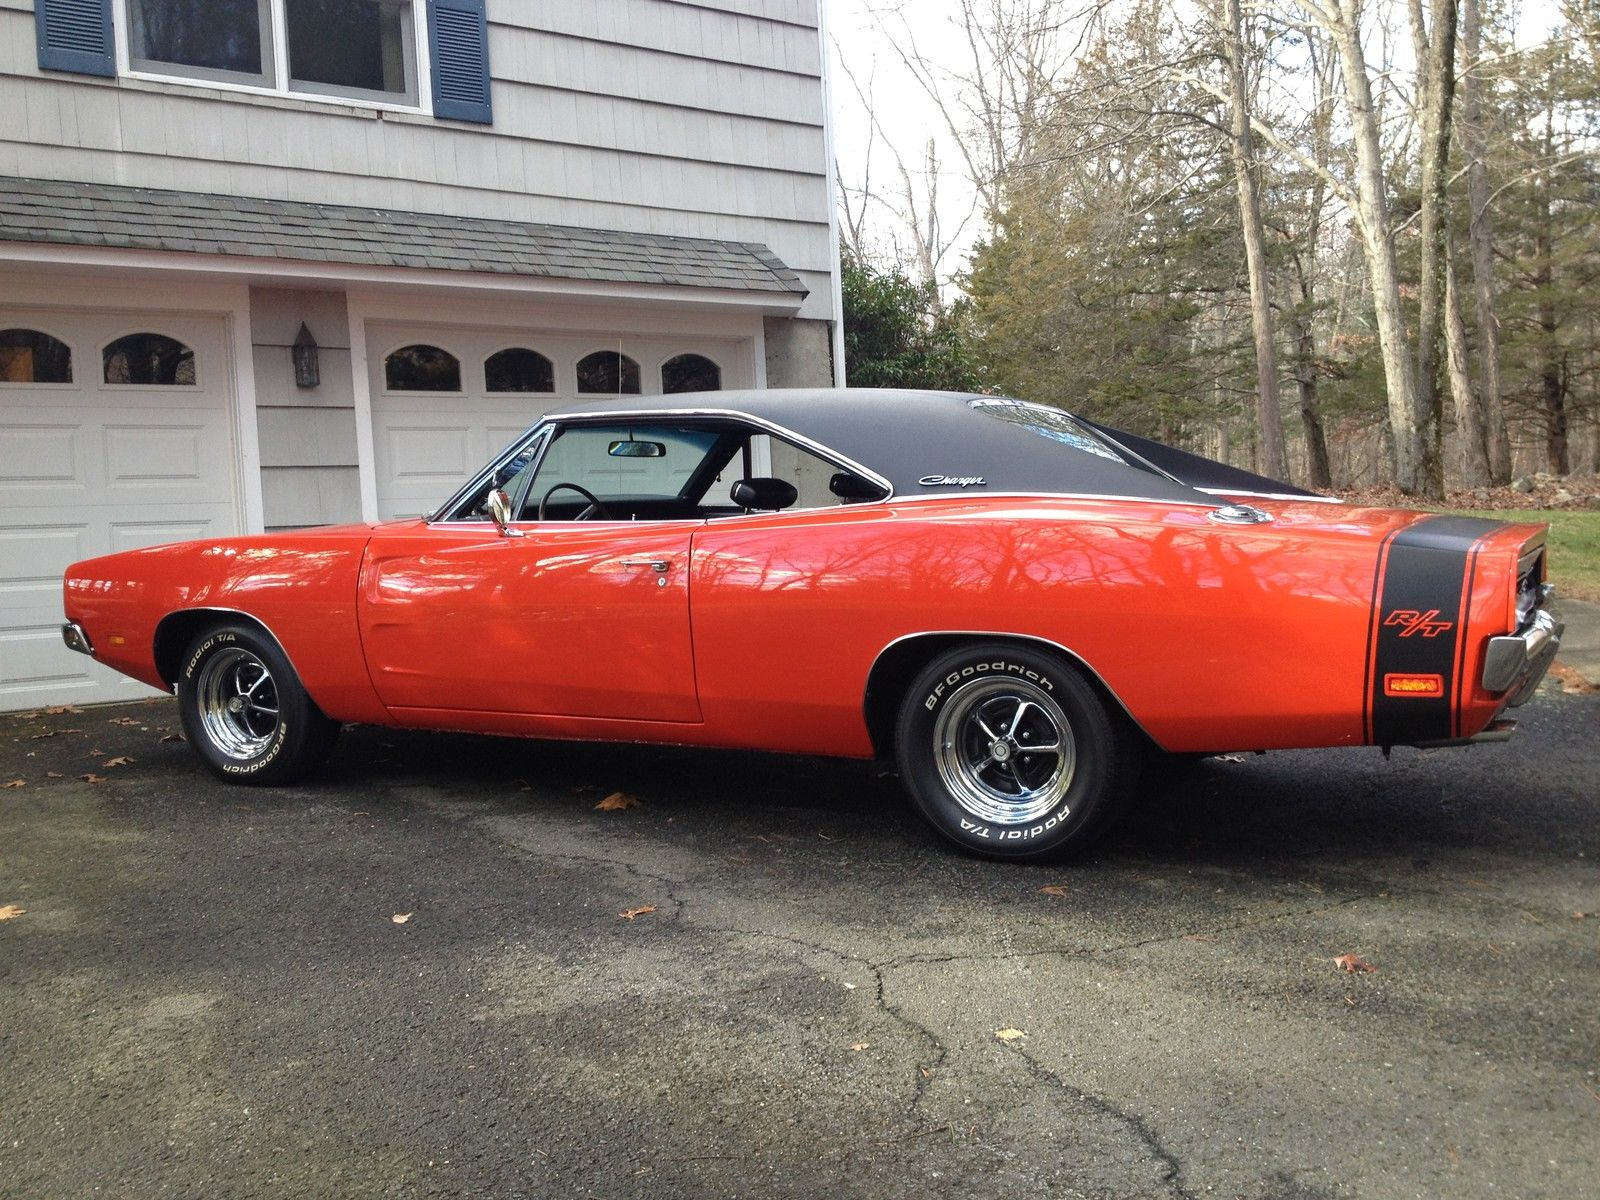 1969 dodge charger r t 440 4 speed dana the real deal 39 s match build sheet. Black Bedroom Furniture Sets. Home Design Ideas